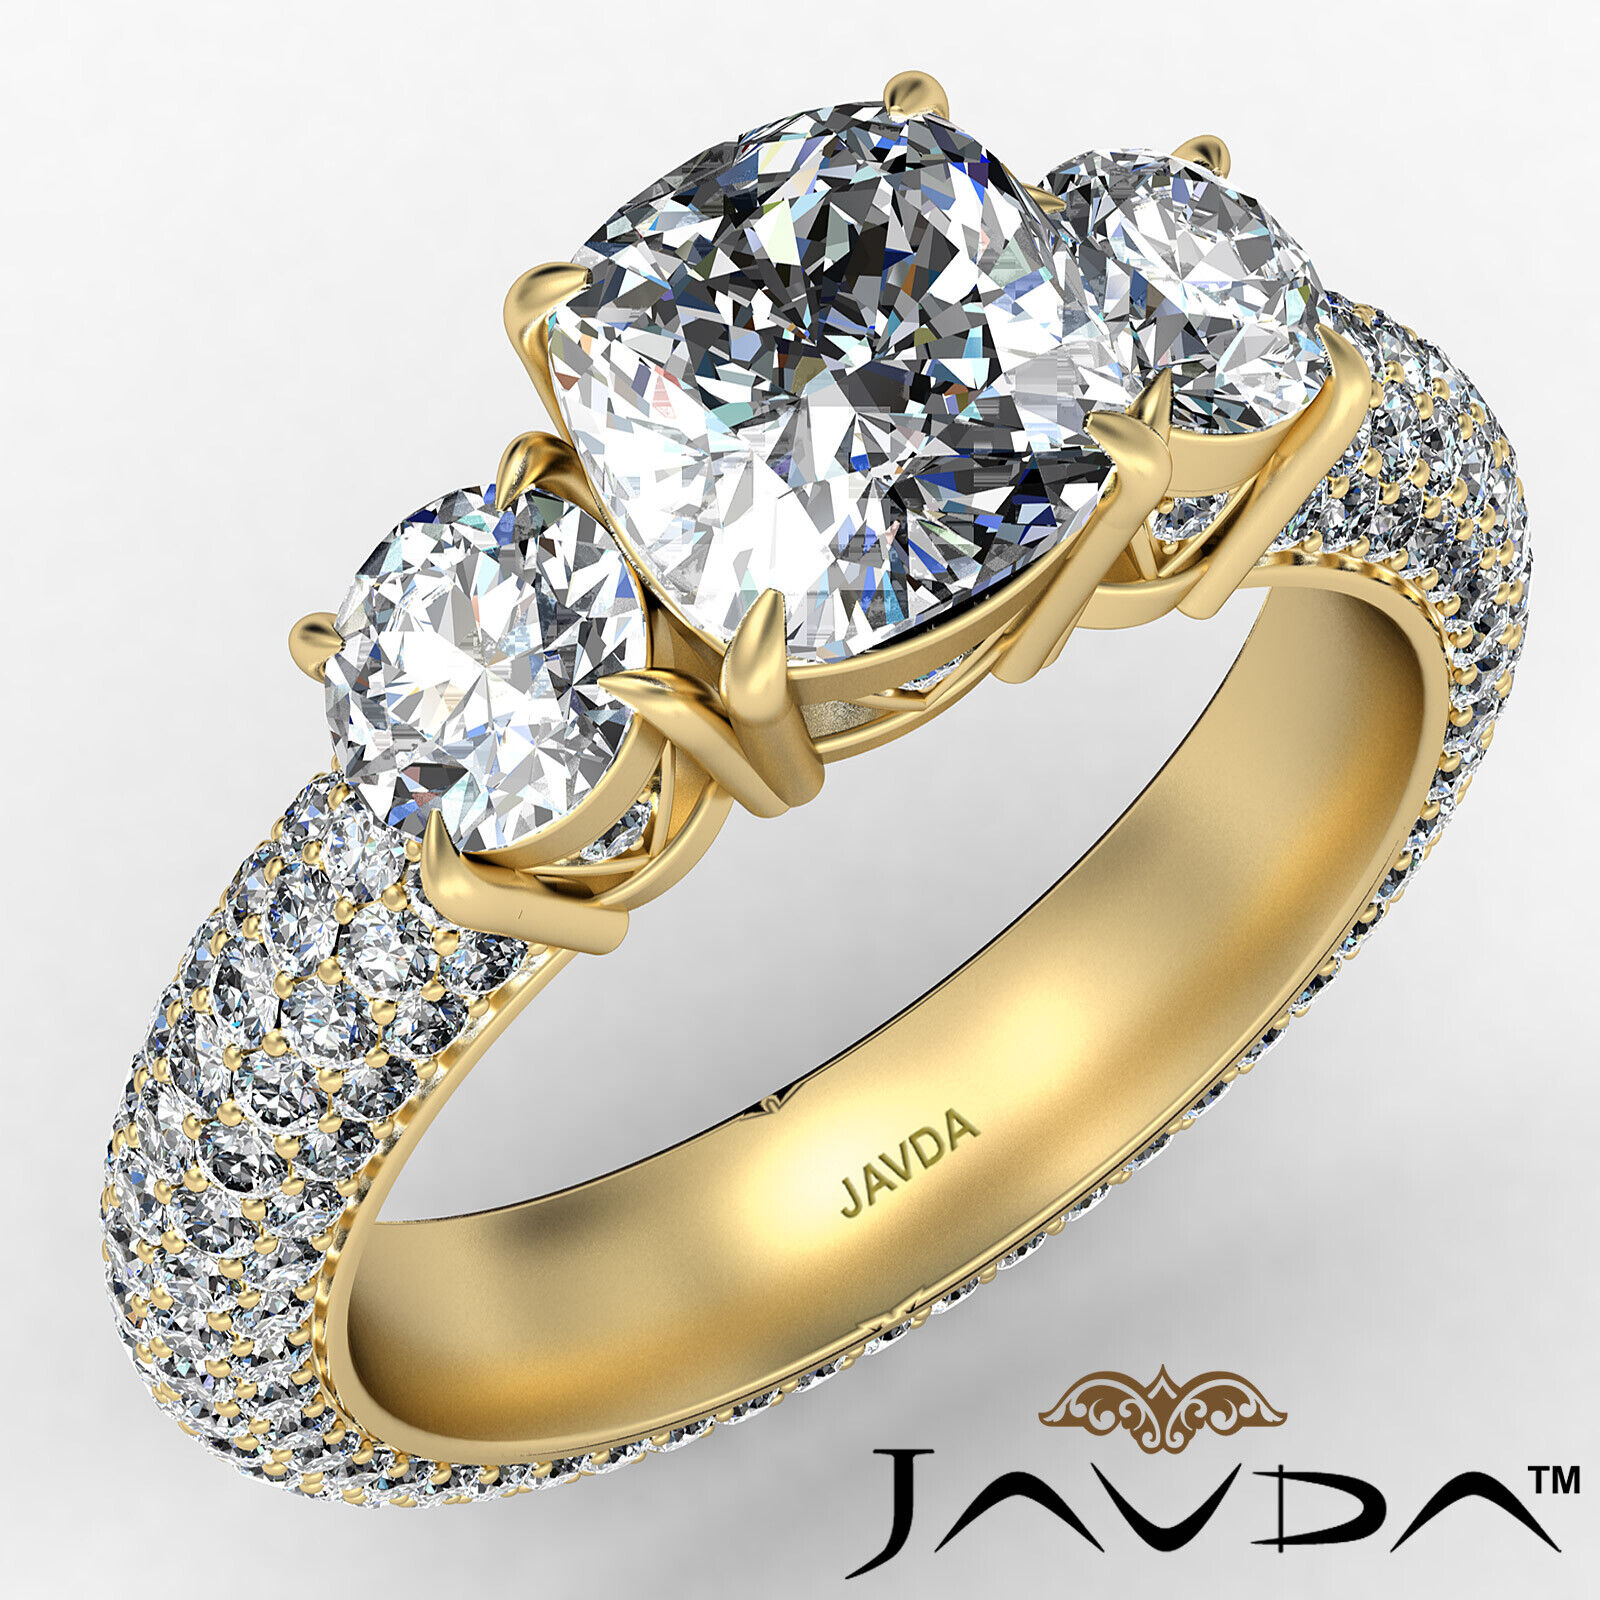 Cushion Diamond Engagement Ring Certified by GIA, G Color & SI1 clarity 3.44 ctw 1